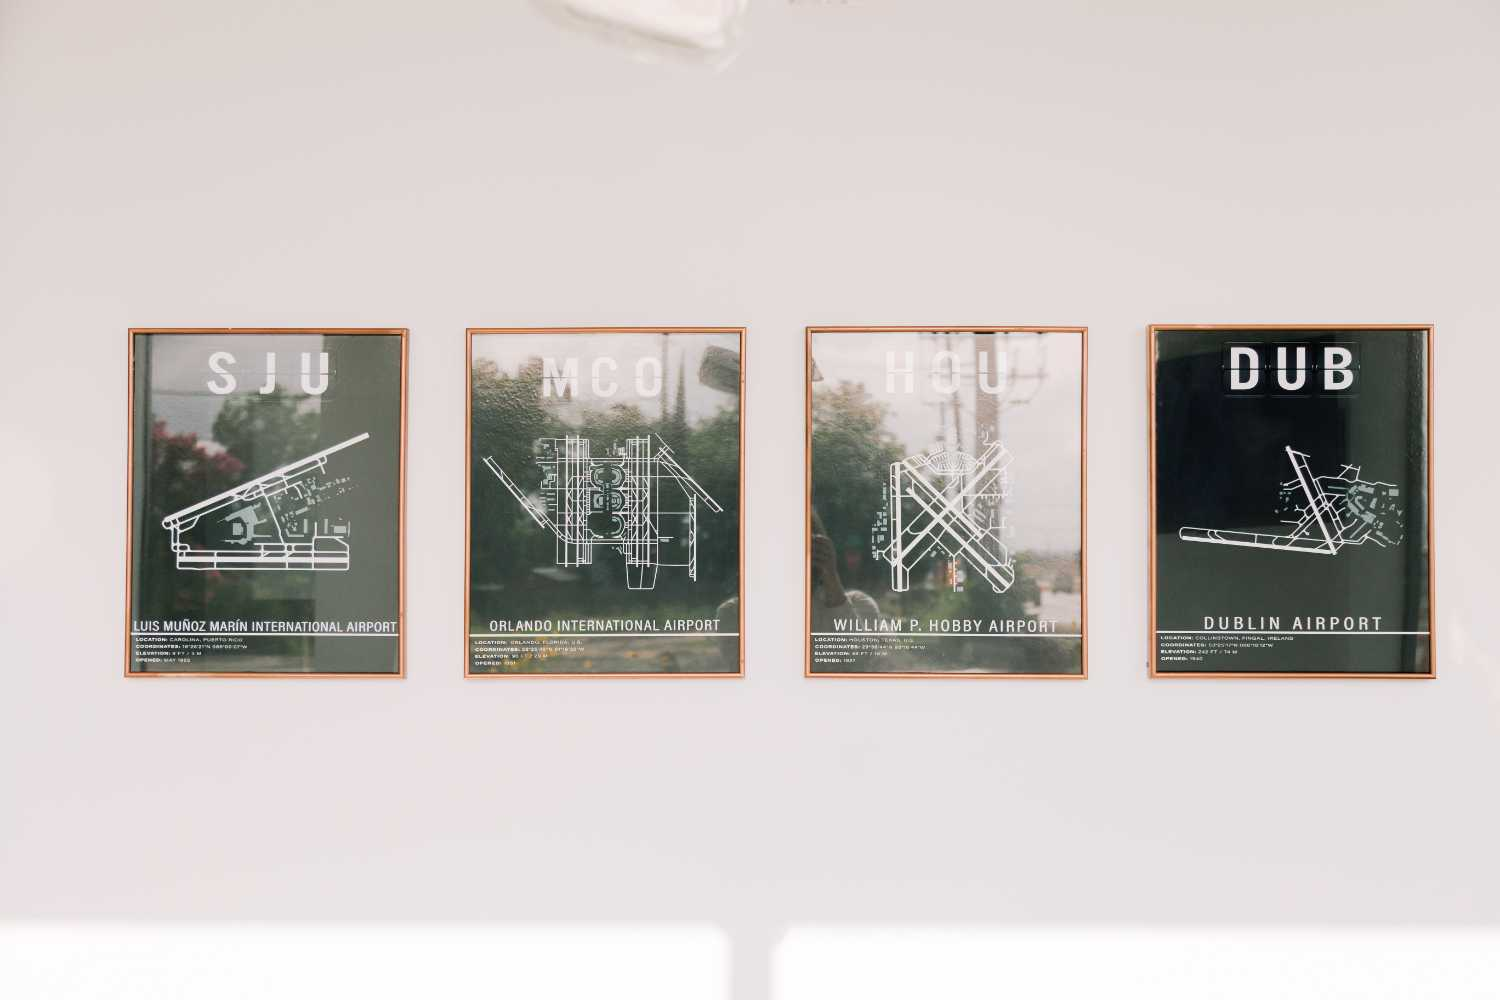 Photos of the wall art at our office, featuring airport diagrams